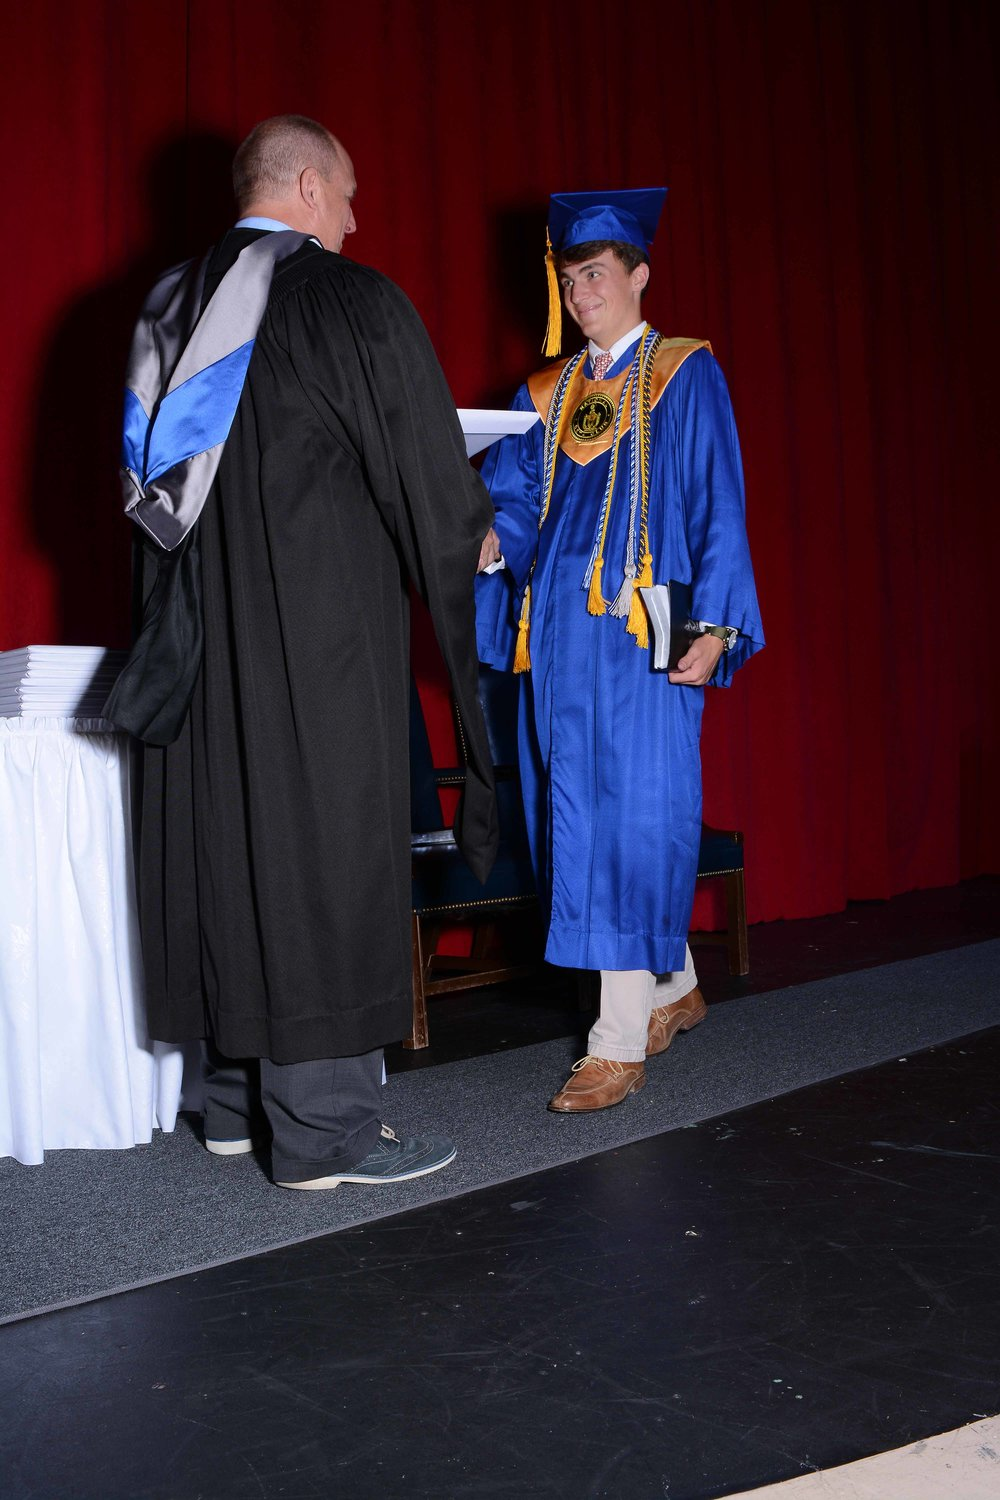 May14 Commencement63.jpg